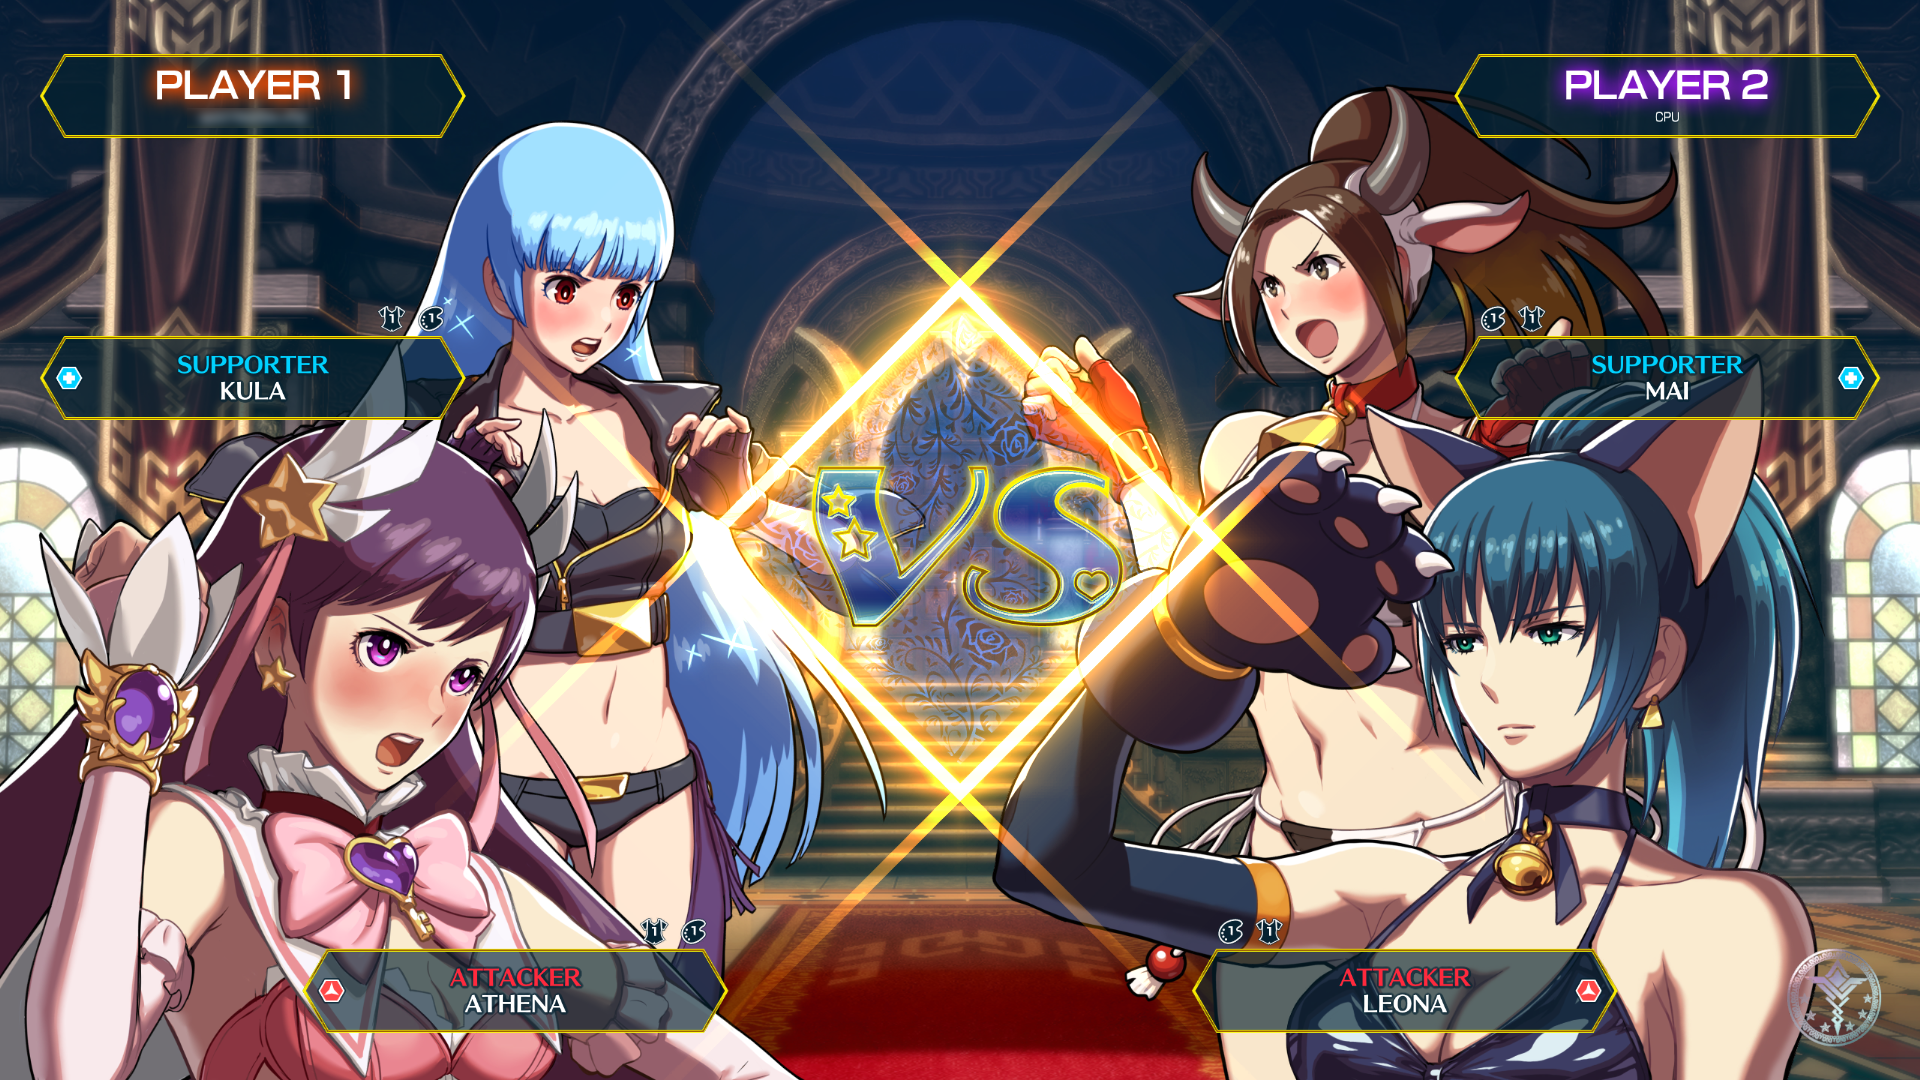 Snk Heroines Tag Team Frenzy S Story Mode Will Offer Different Dialogue Depending On Heroine Pairing Snk Heroines Tag Team Fighter Heroine King Of Fighters